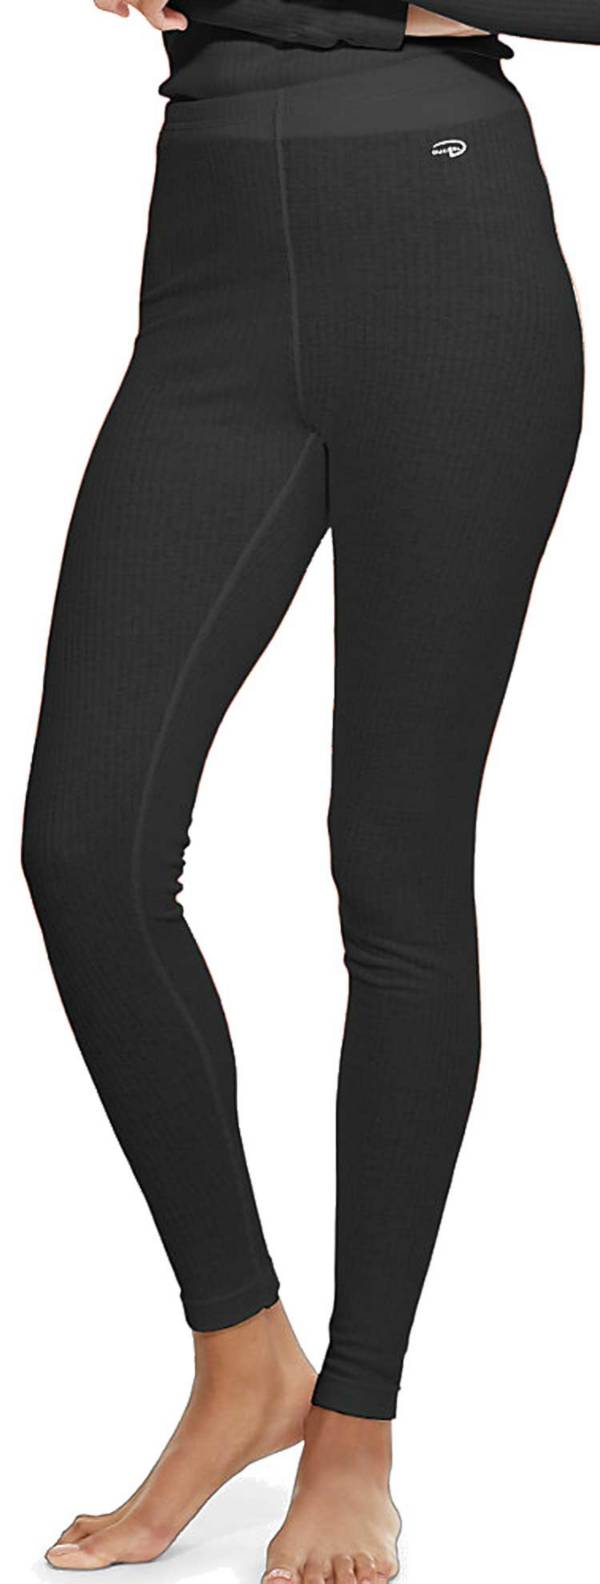 Duofold Women's Baselayer Thermal Pants product image